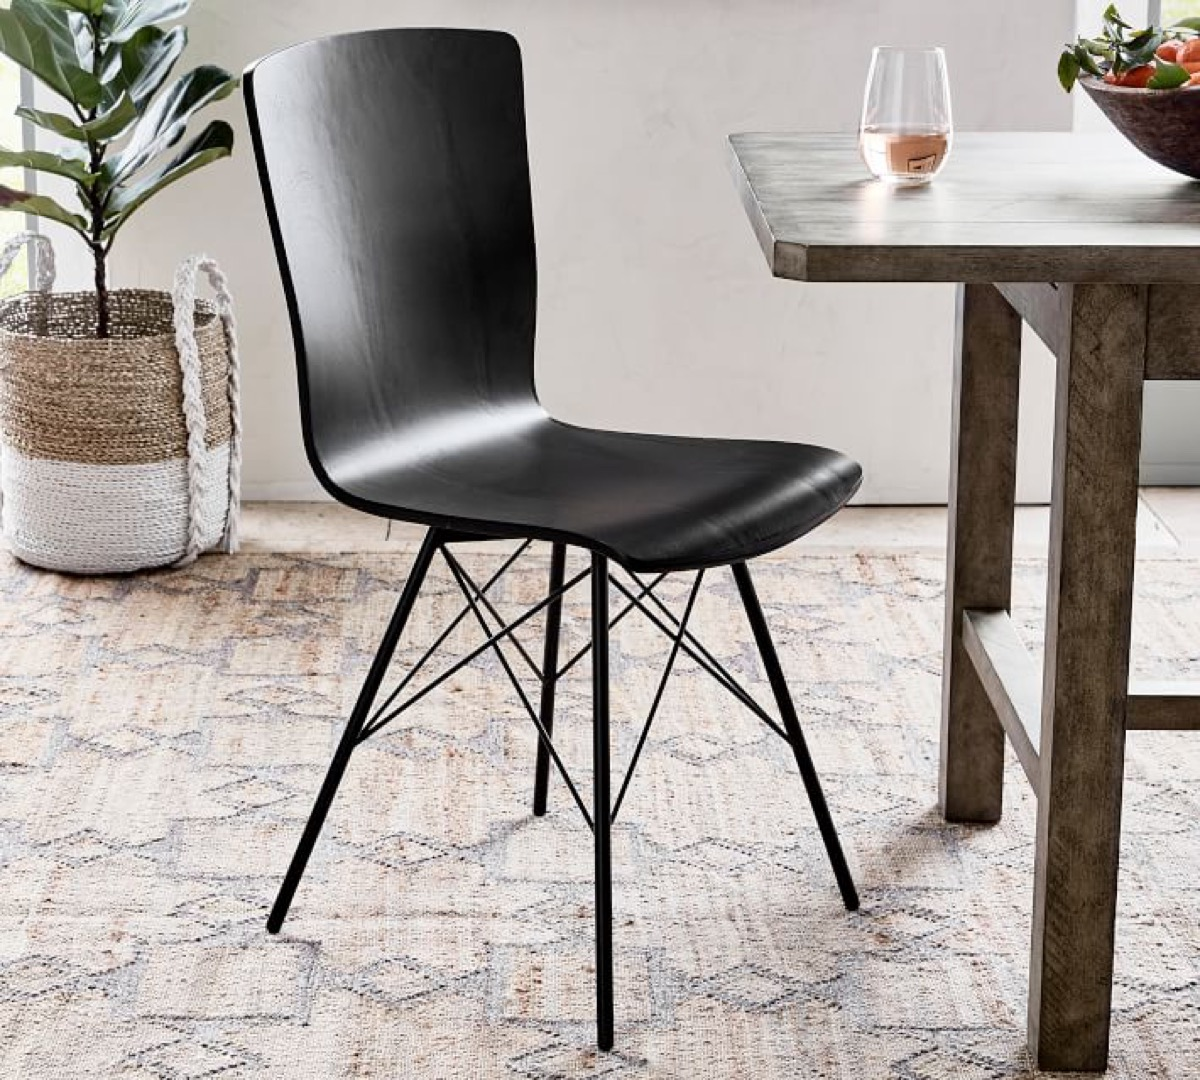 black dining room chair next to wooden table and plant in two-toned pot